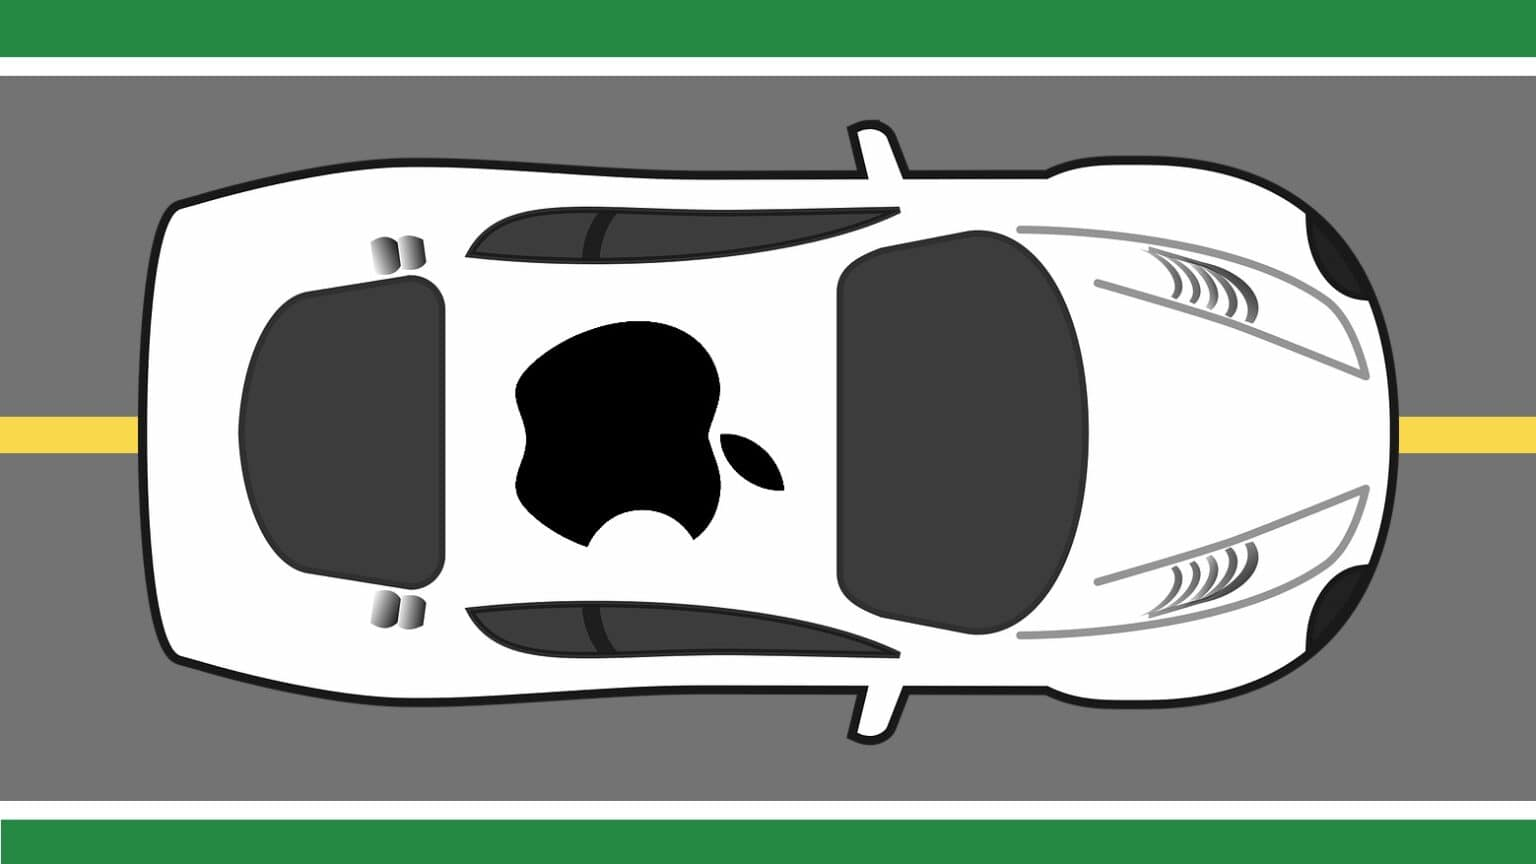 The Apple Car won't look anything like this. At all.